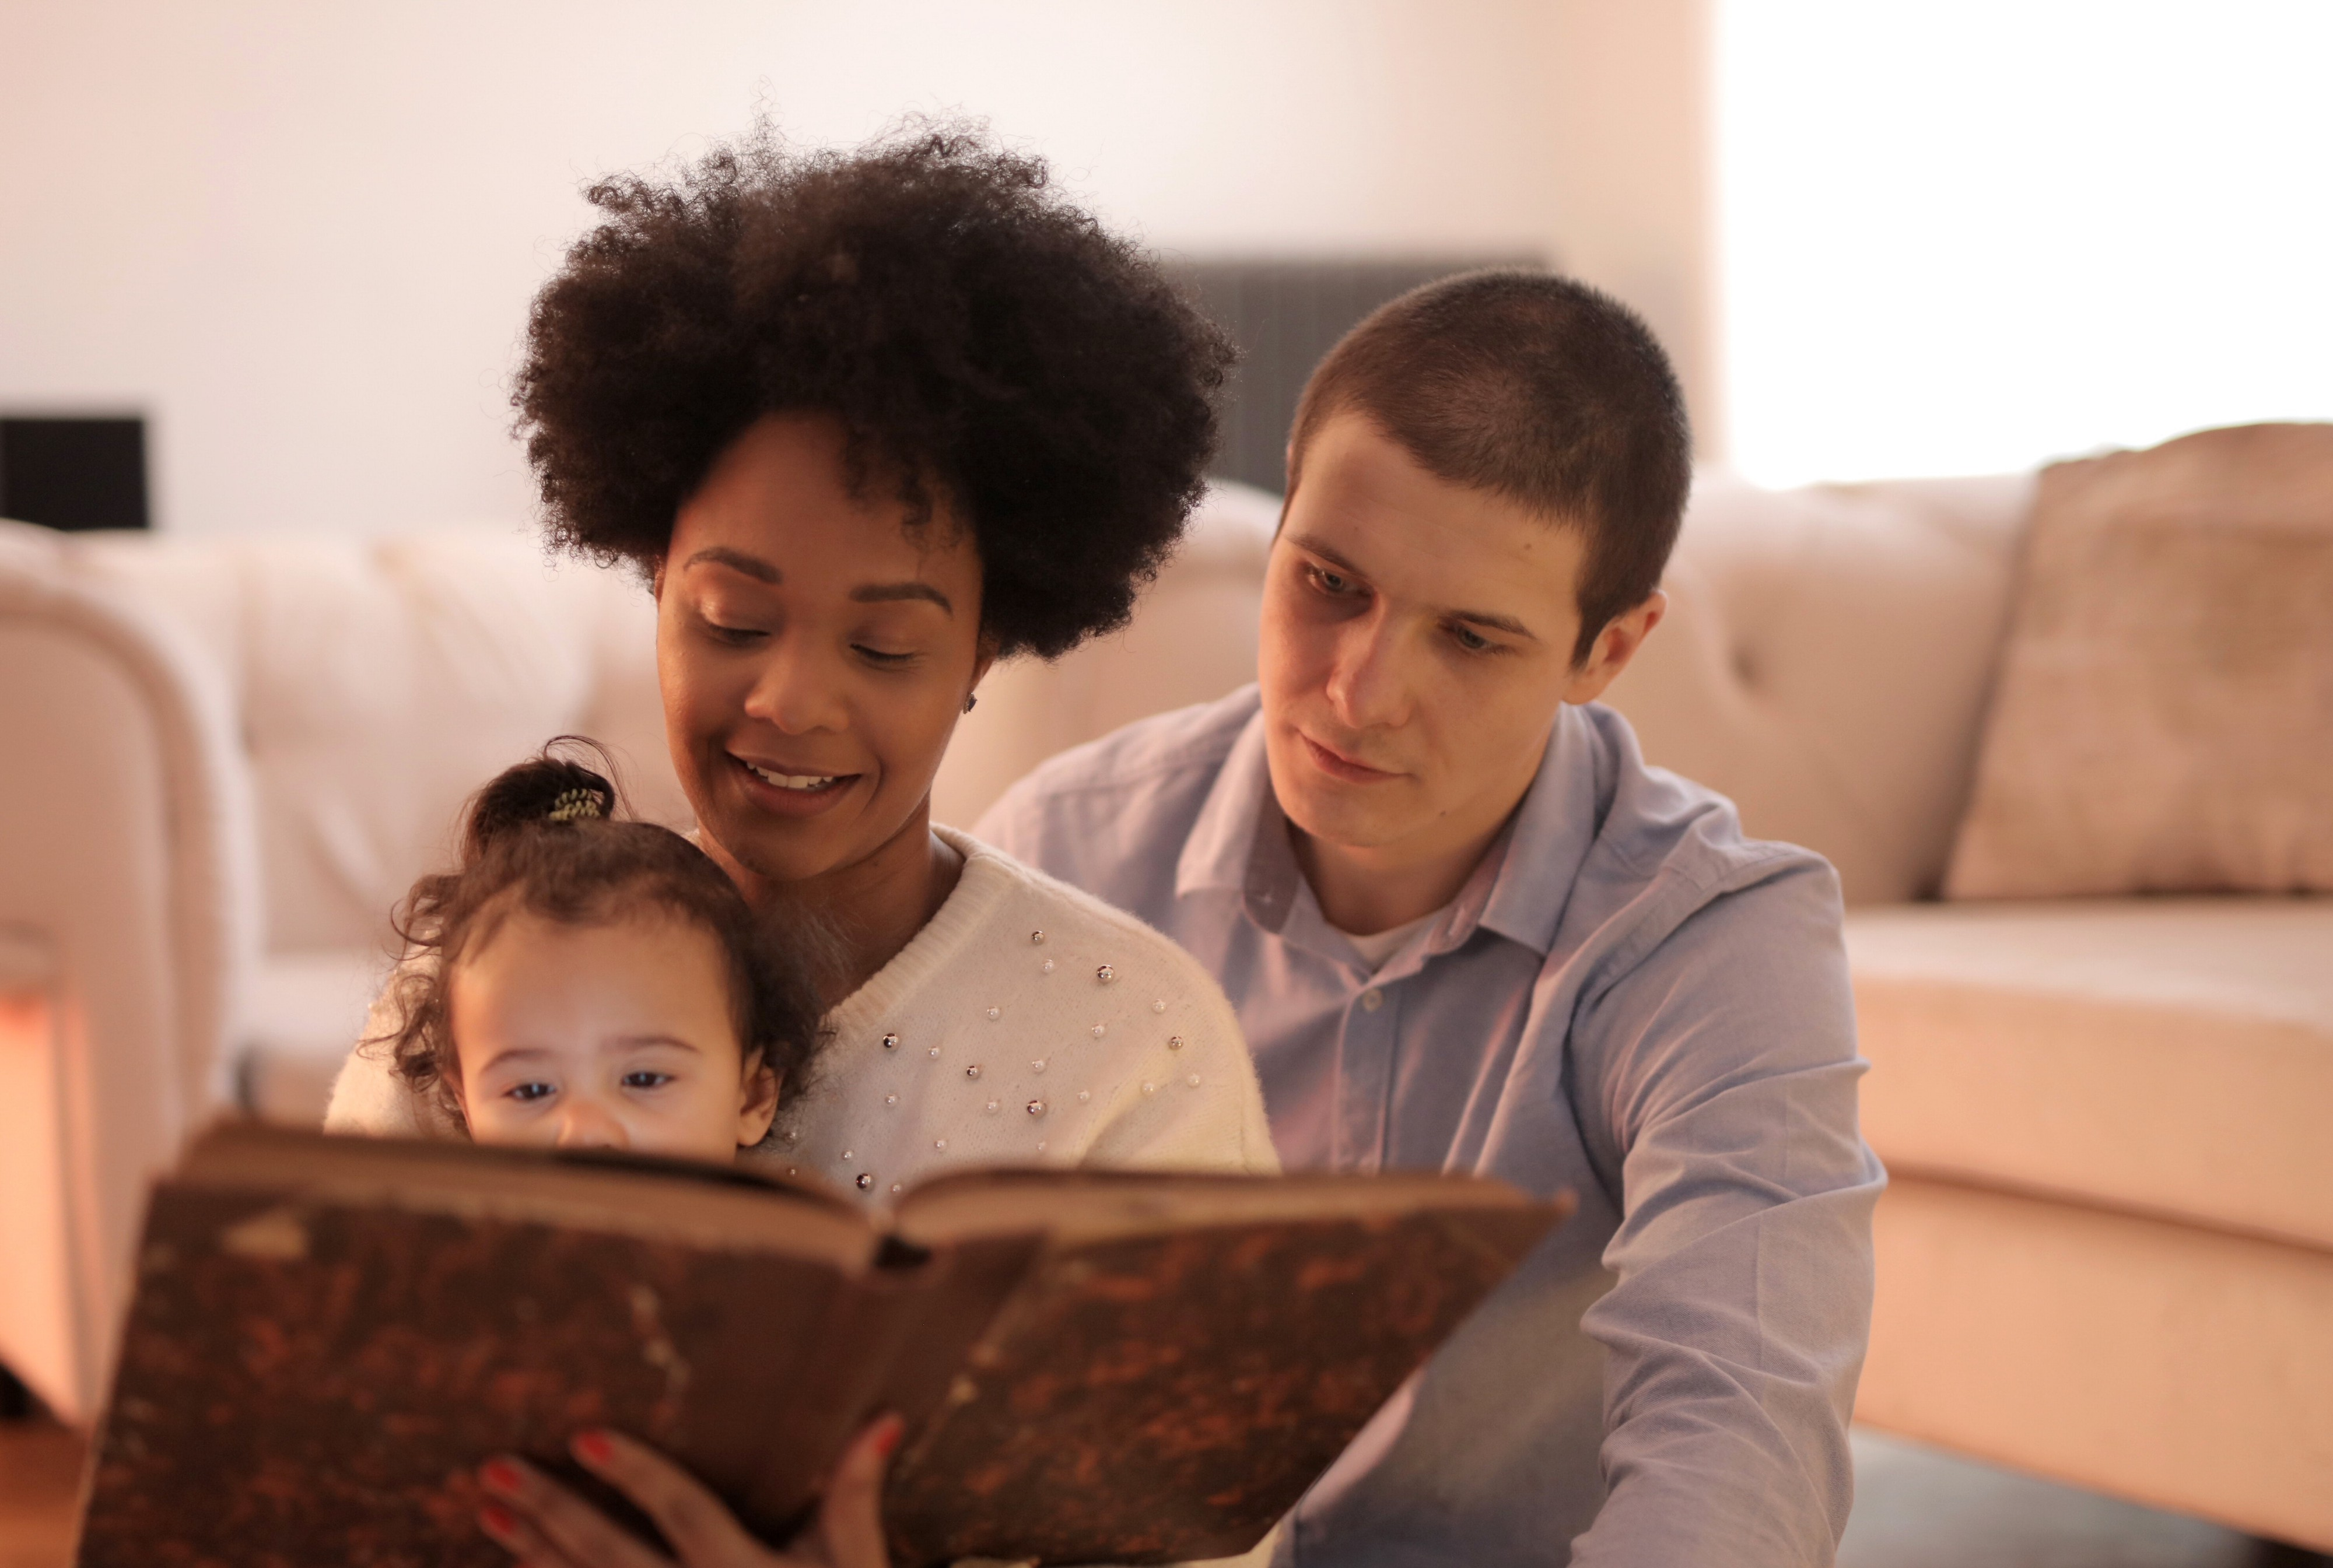 Interracial heterosexual couple of white male and brown-skinned female with short curly hair. The mom is holding a 2 year old on her lap and they're reading her a story from a big, brown, old-looking book. They are sitting on a living room floor next to the couch.